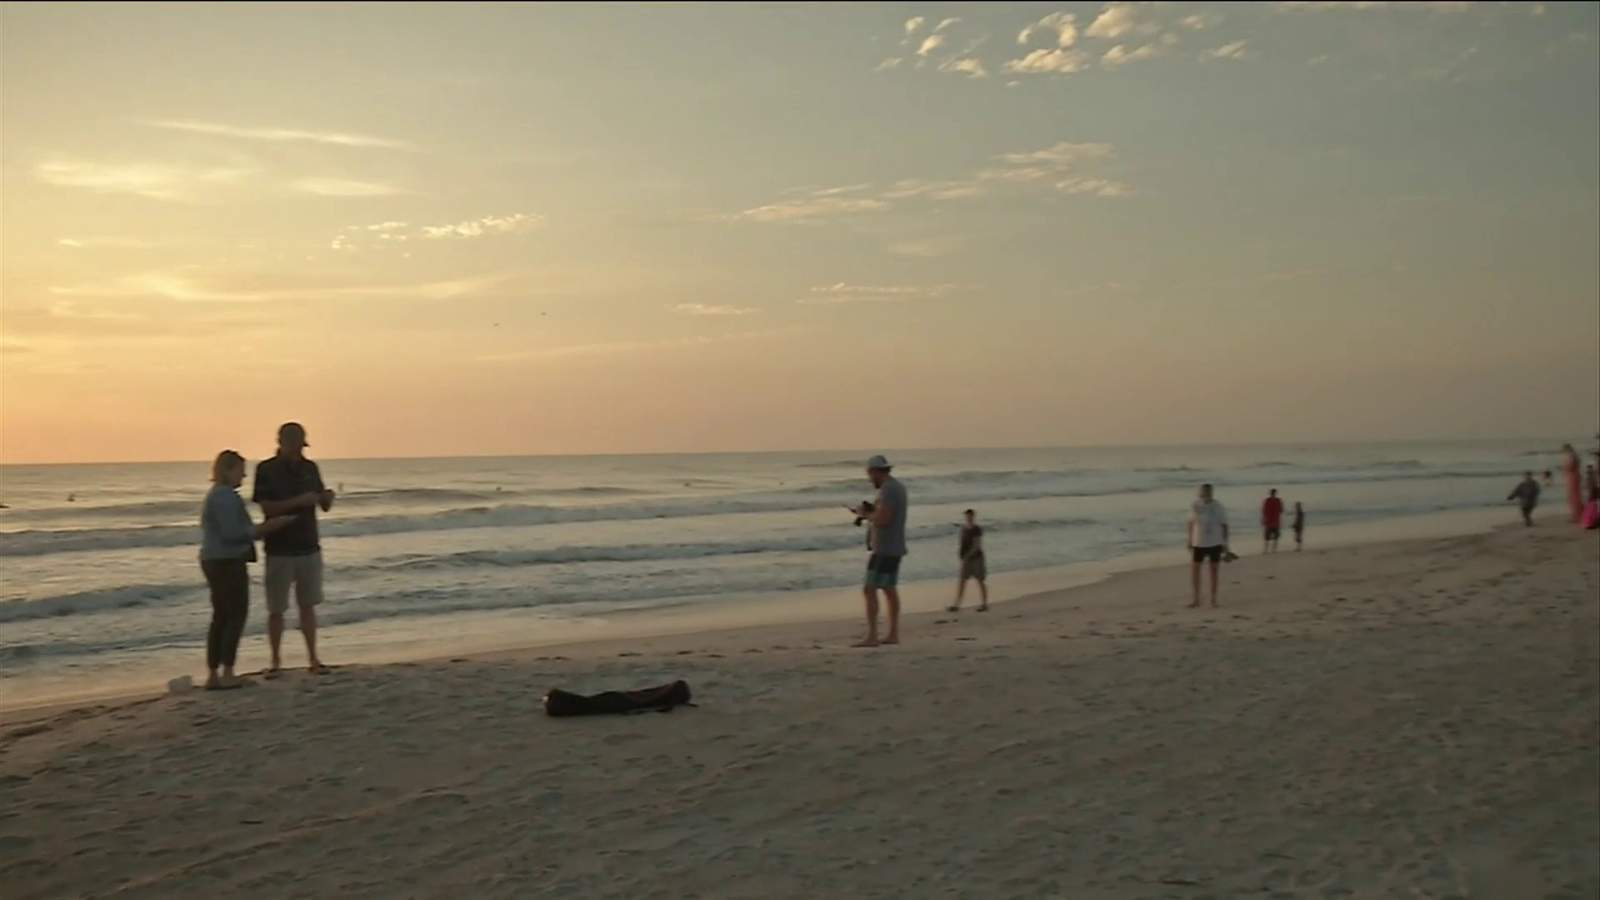 St Johns County Beaches To Reopen